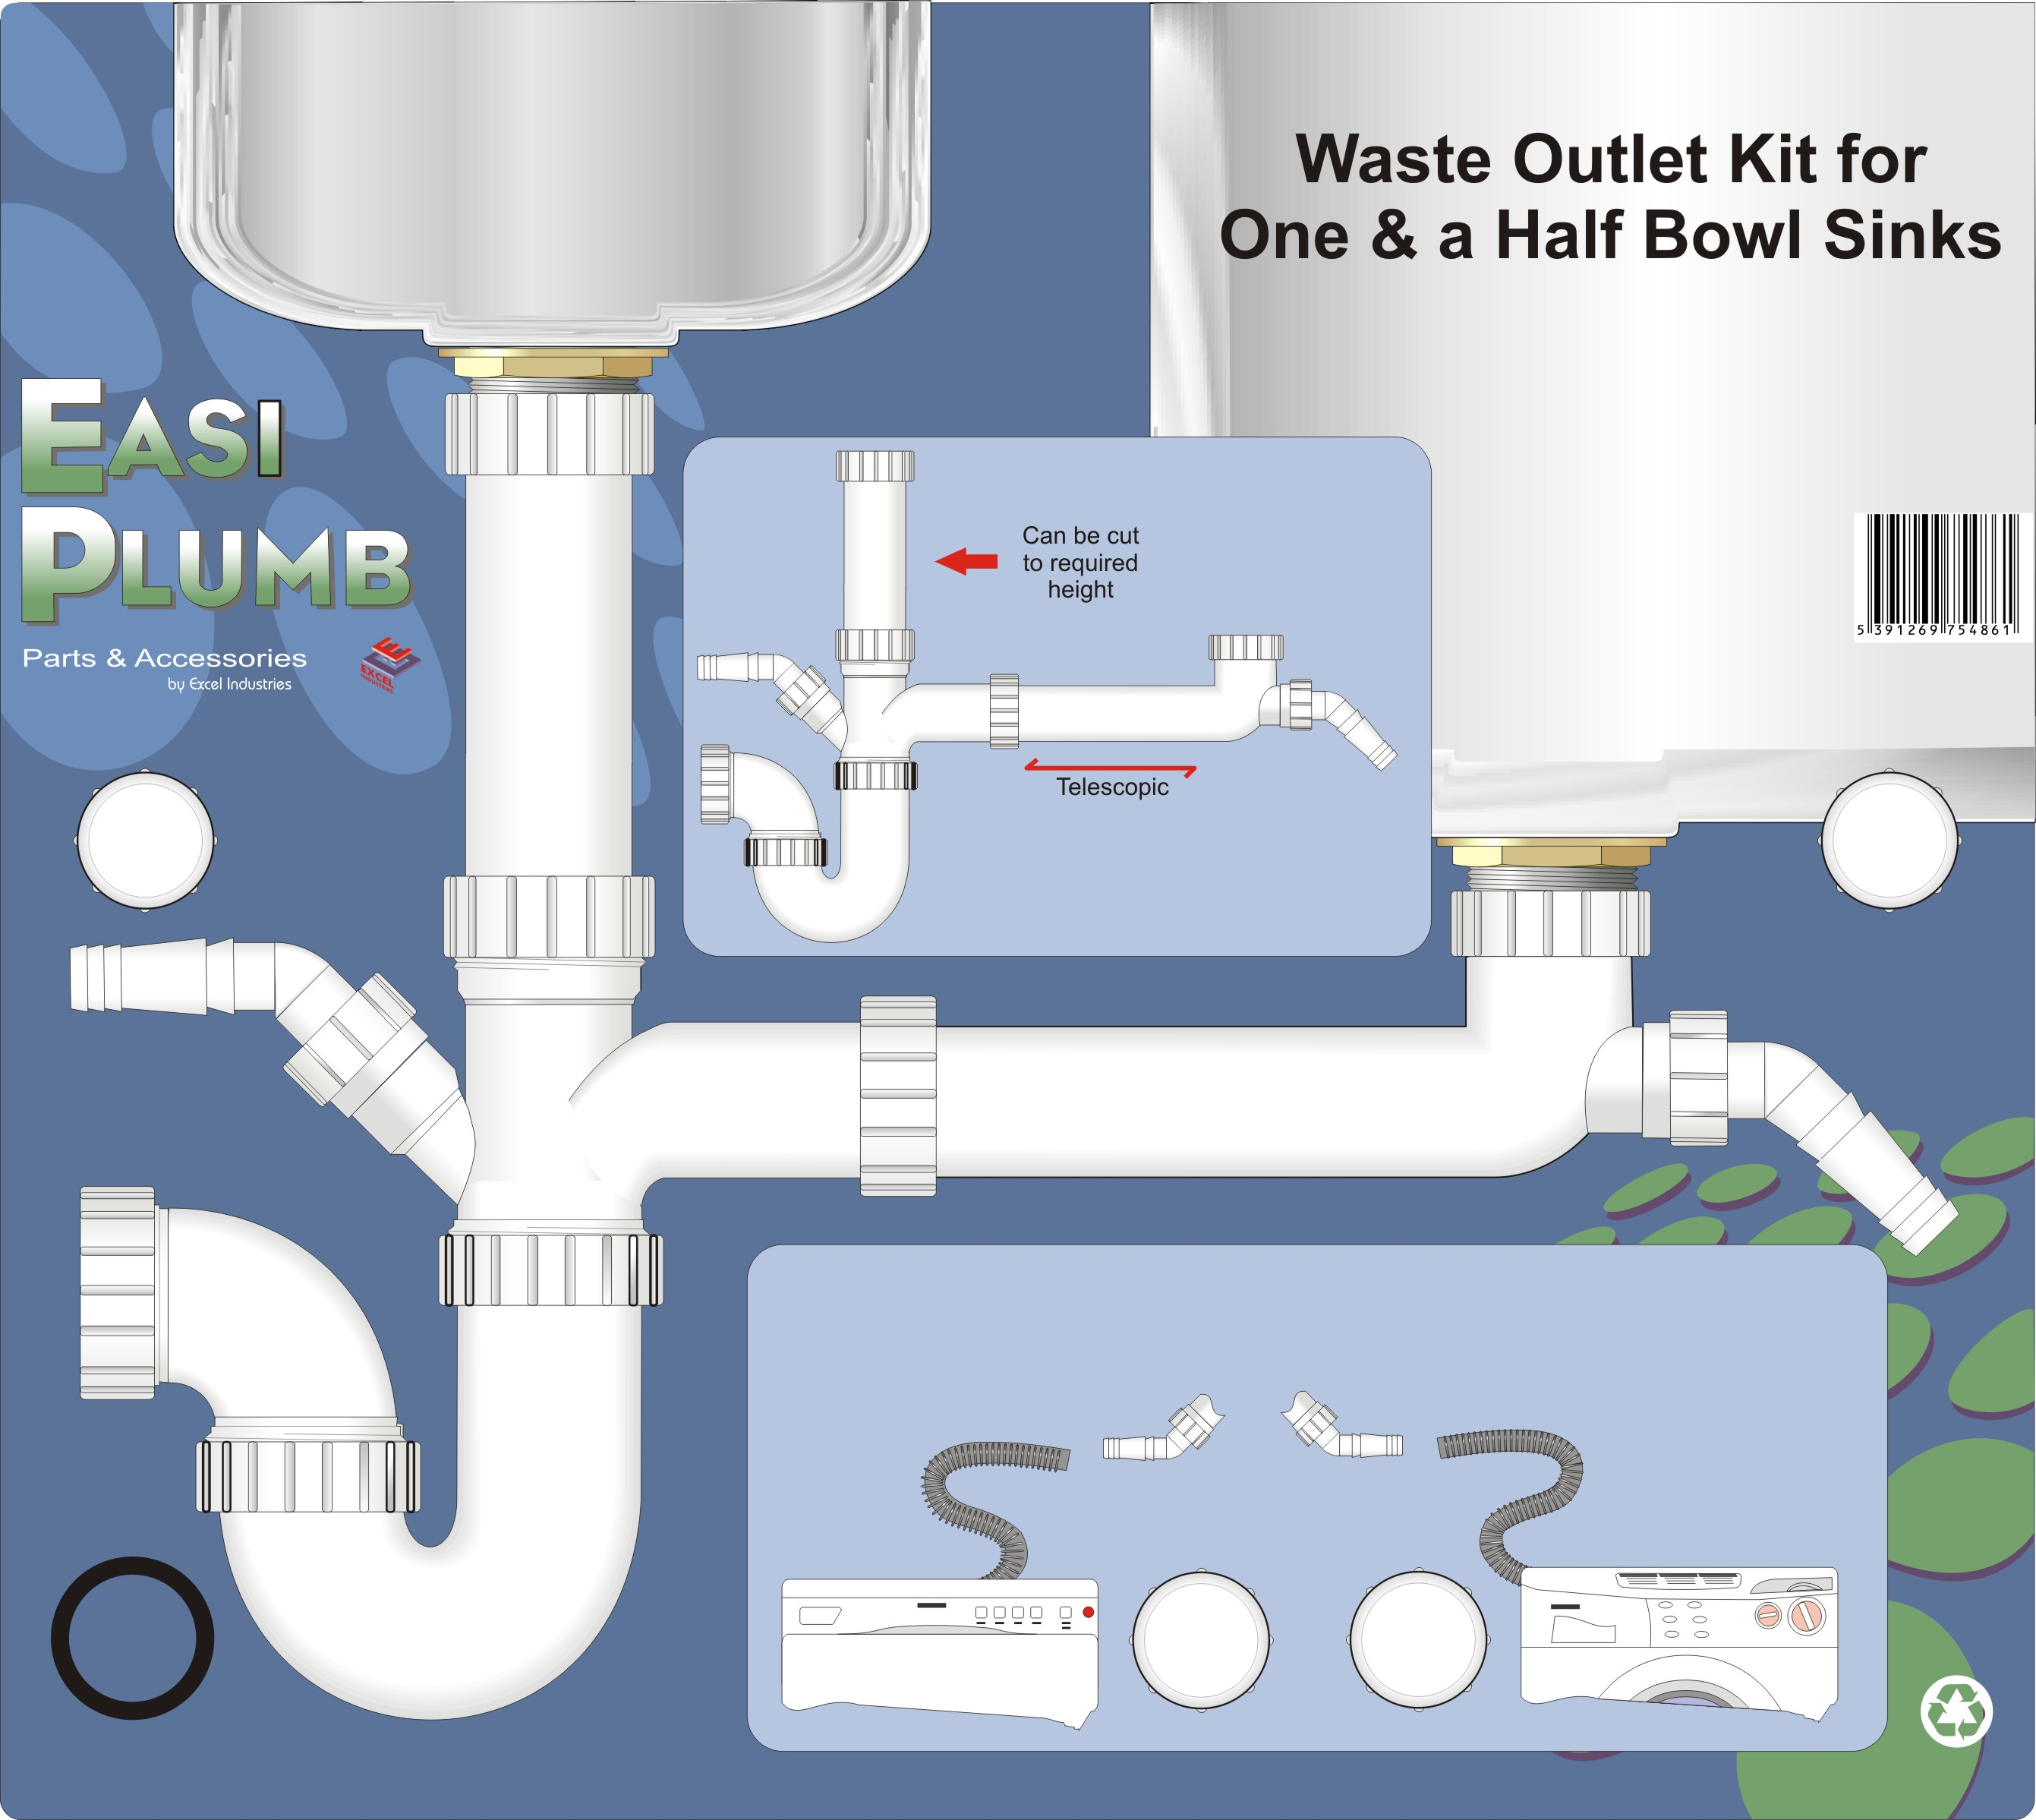 easi plumb waste outlet kit for one and a half bowl sink 1 5in [ 2682 x 2397 Pixel ]